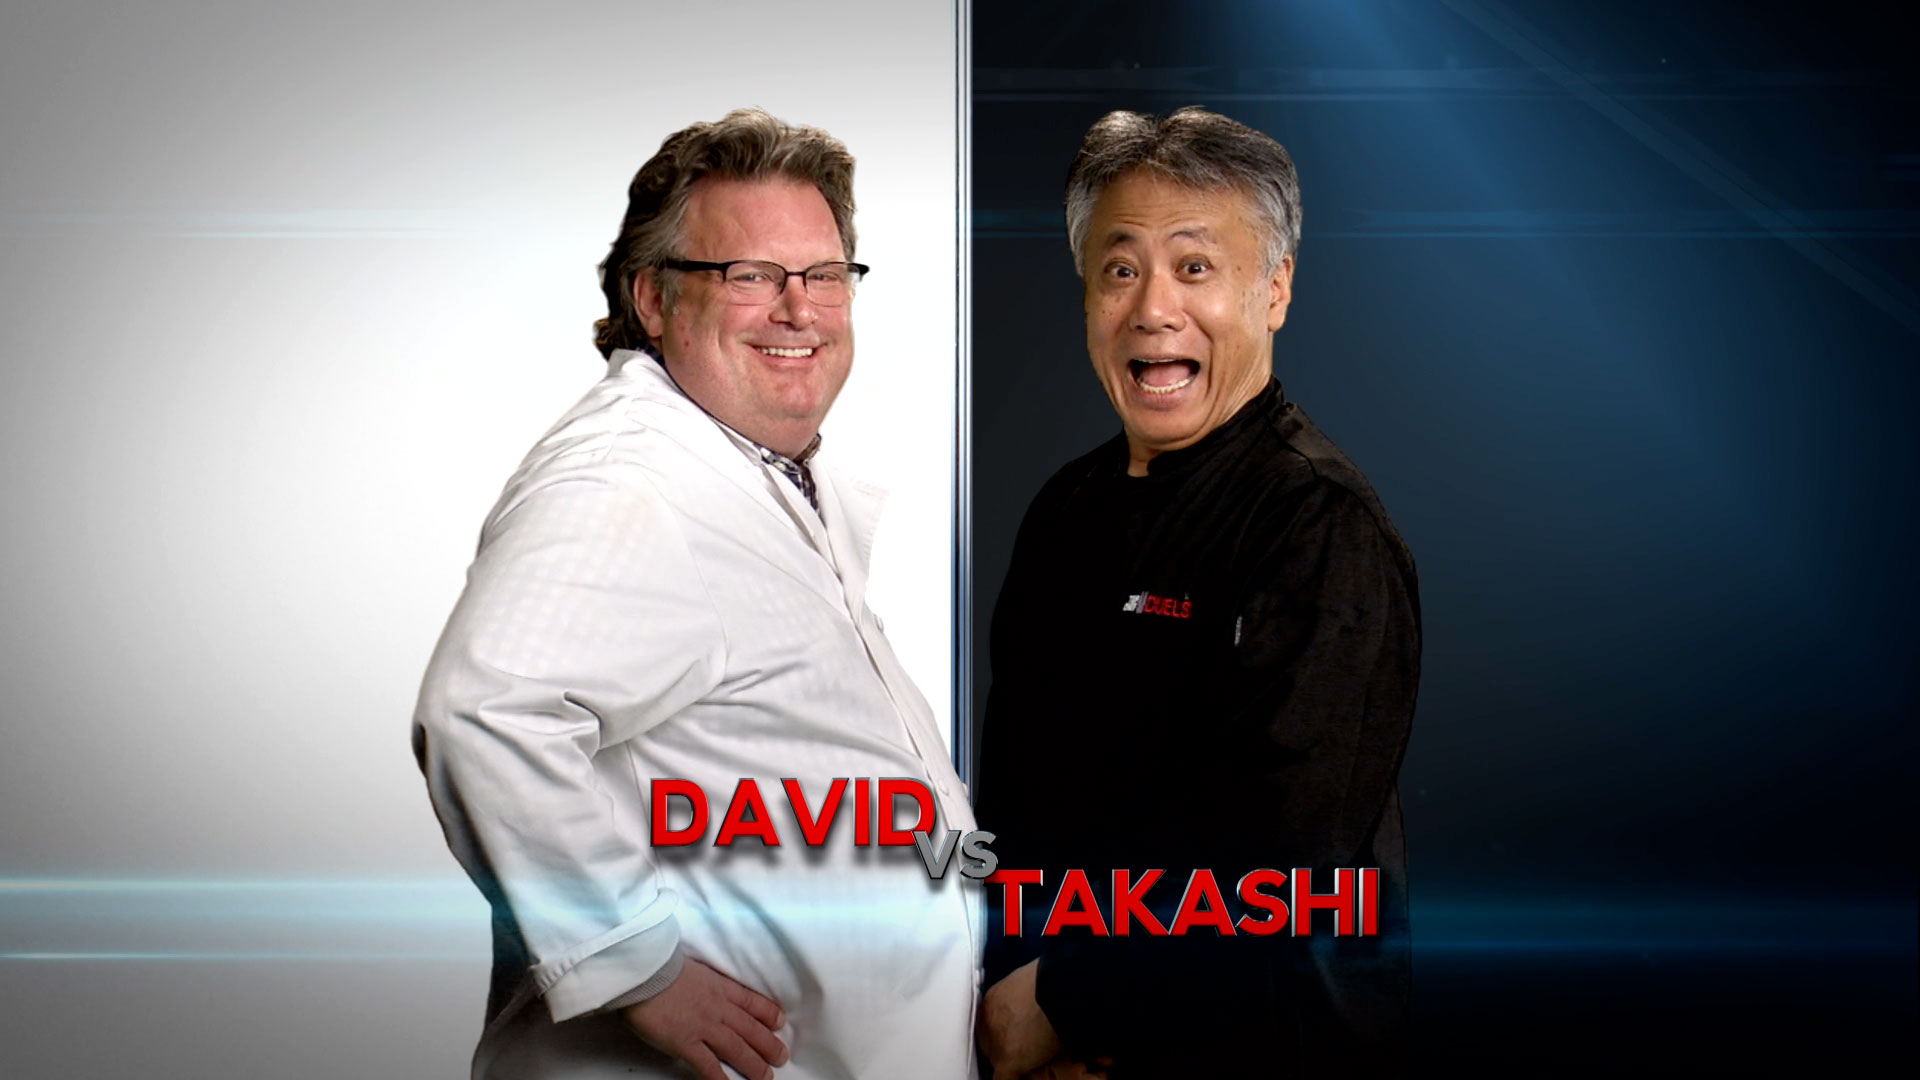 The Call Out: Takashi vs. David